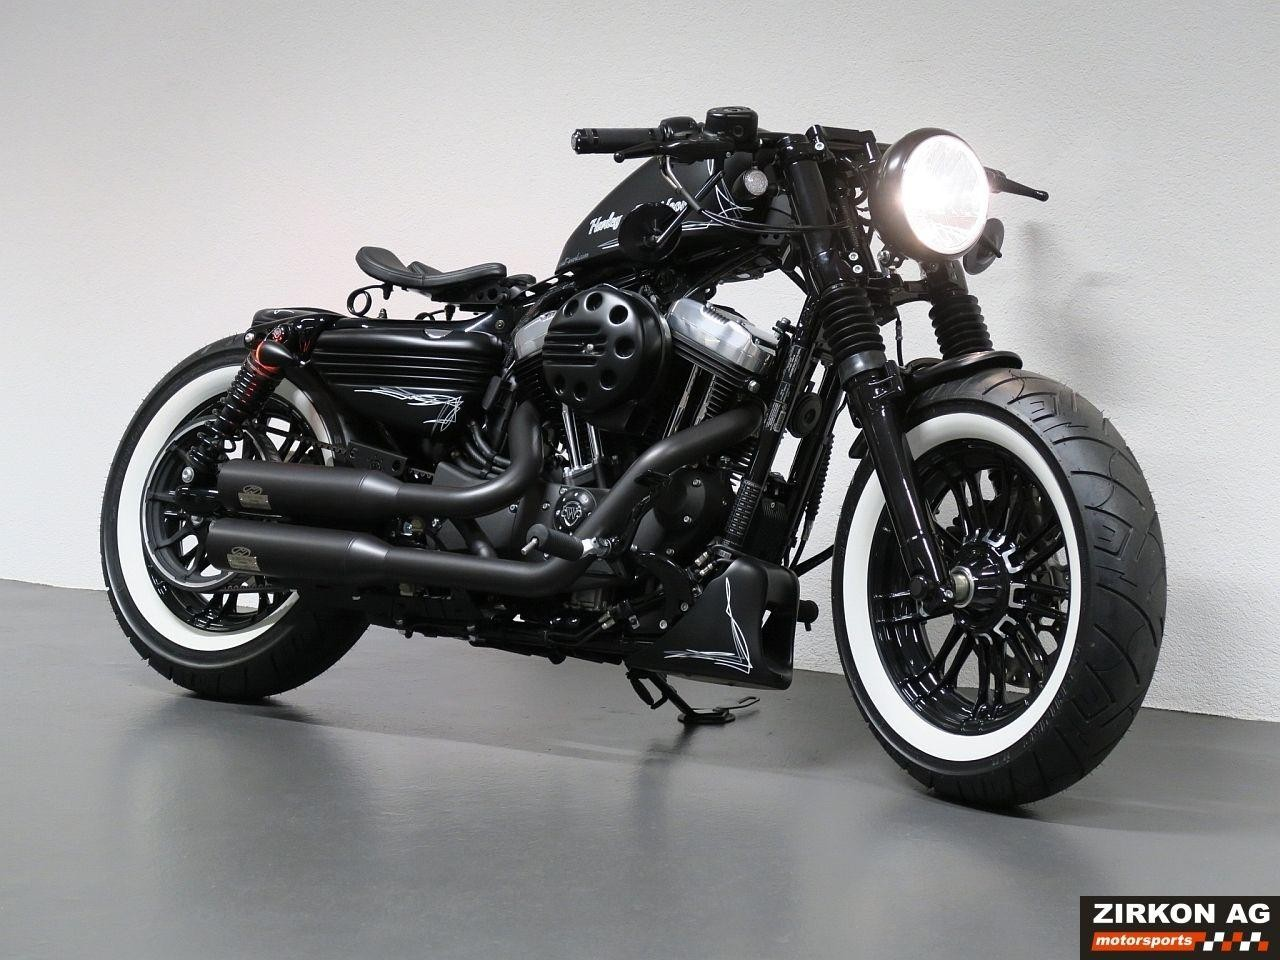 moto neuve acheter harley davidson xl 1200 x sportster forty eight abs cult werk zirkon ag h nenberg. Black Bedroom Furniture Sets. Home Design Ideas